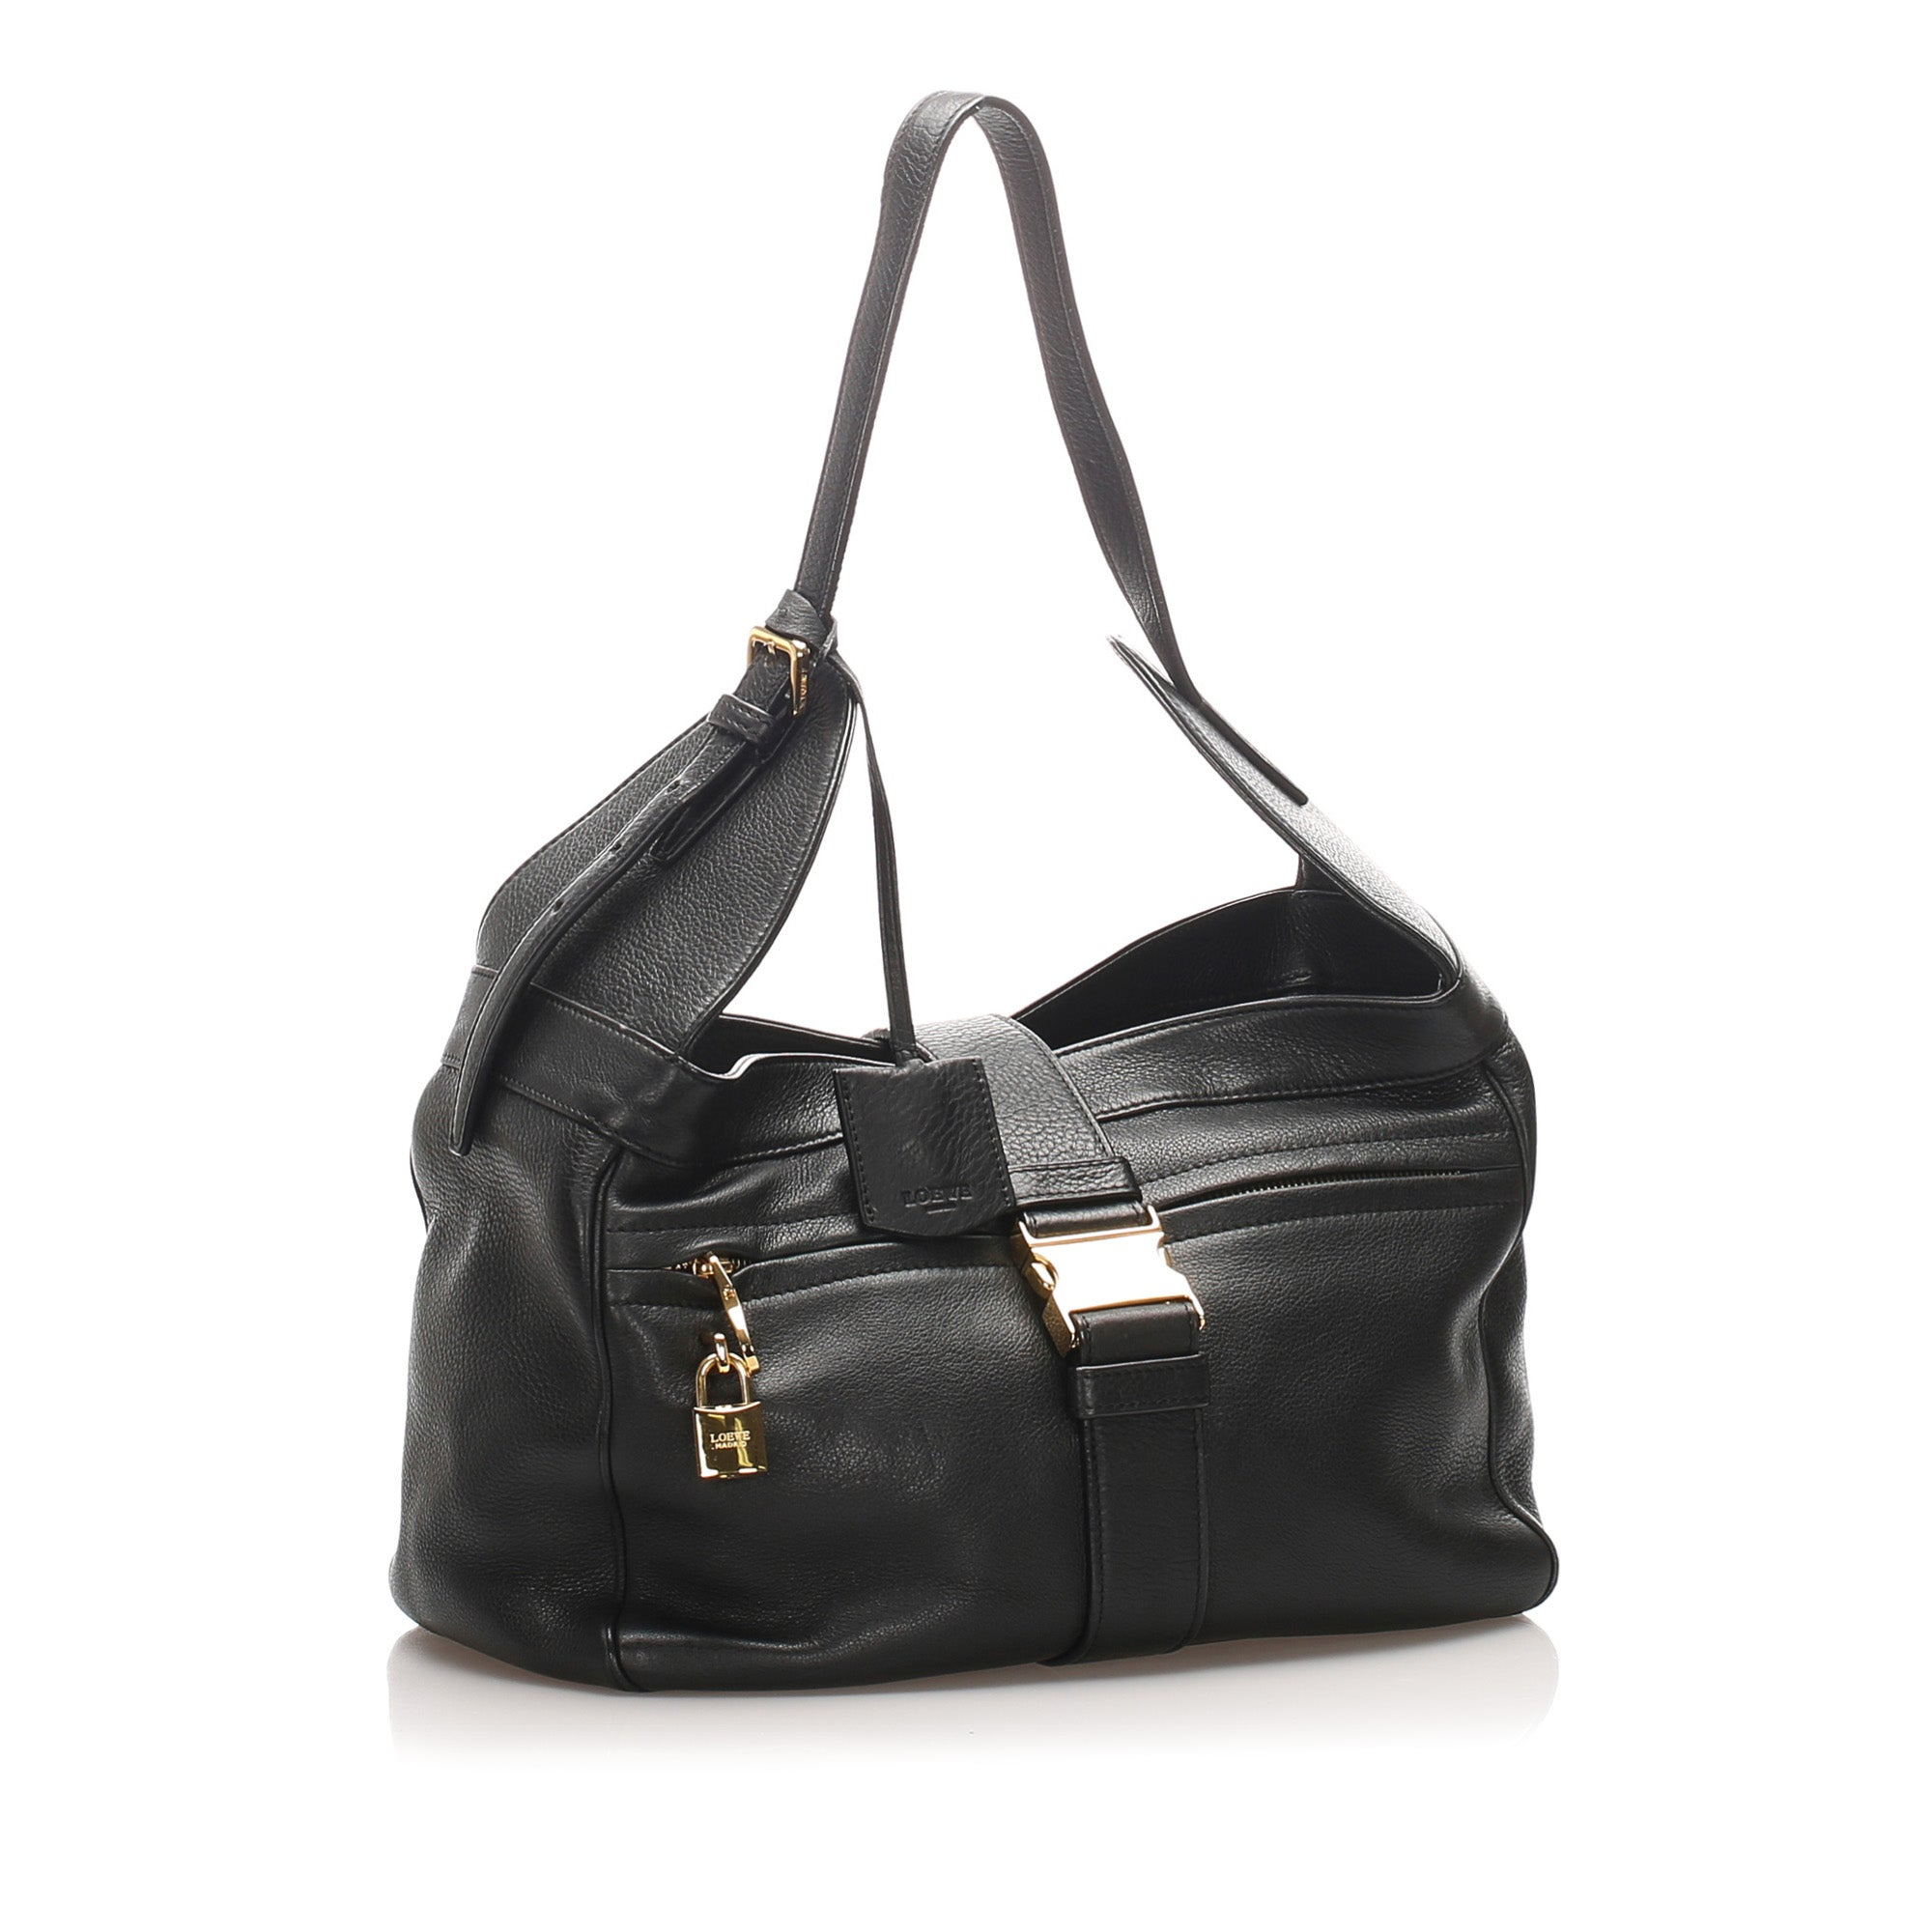 Loewe Black Leather Shoulder Bag